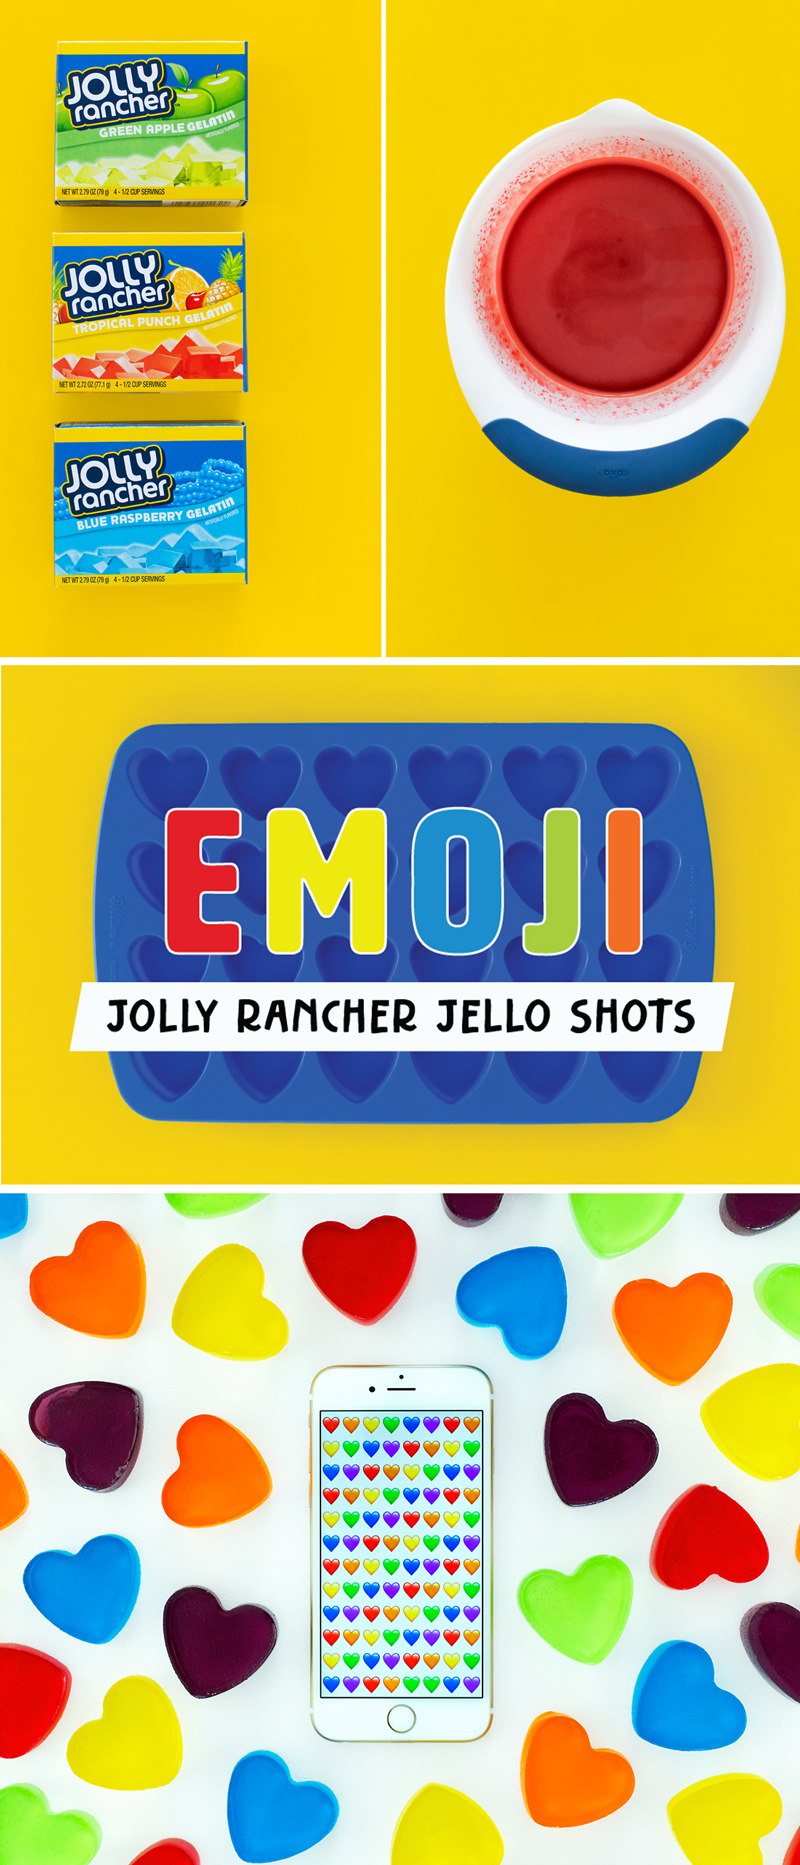 Emoji Jolly Rancher Jello Shots